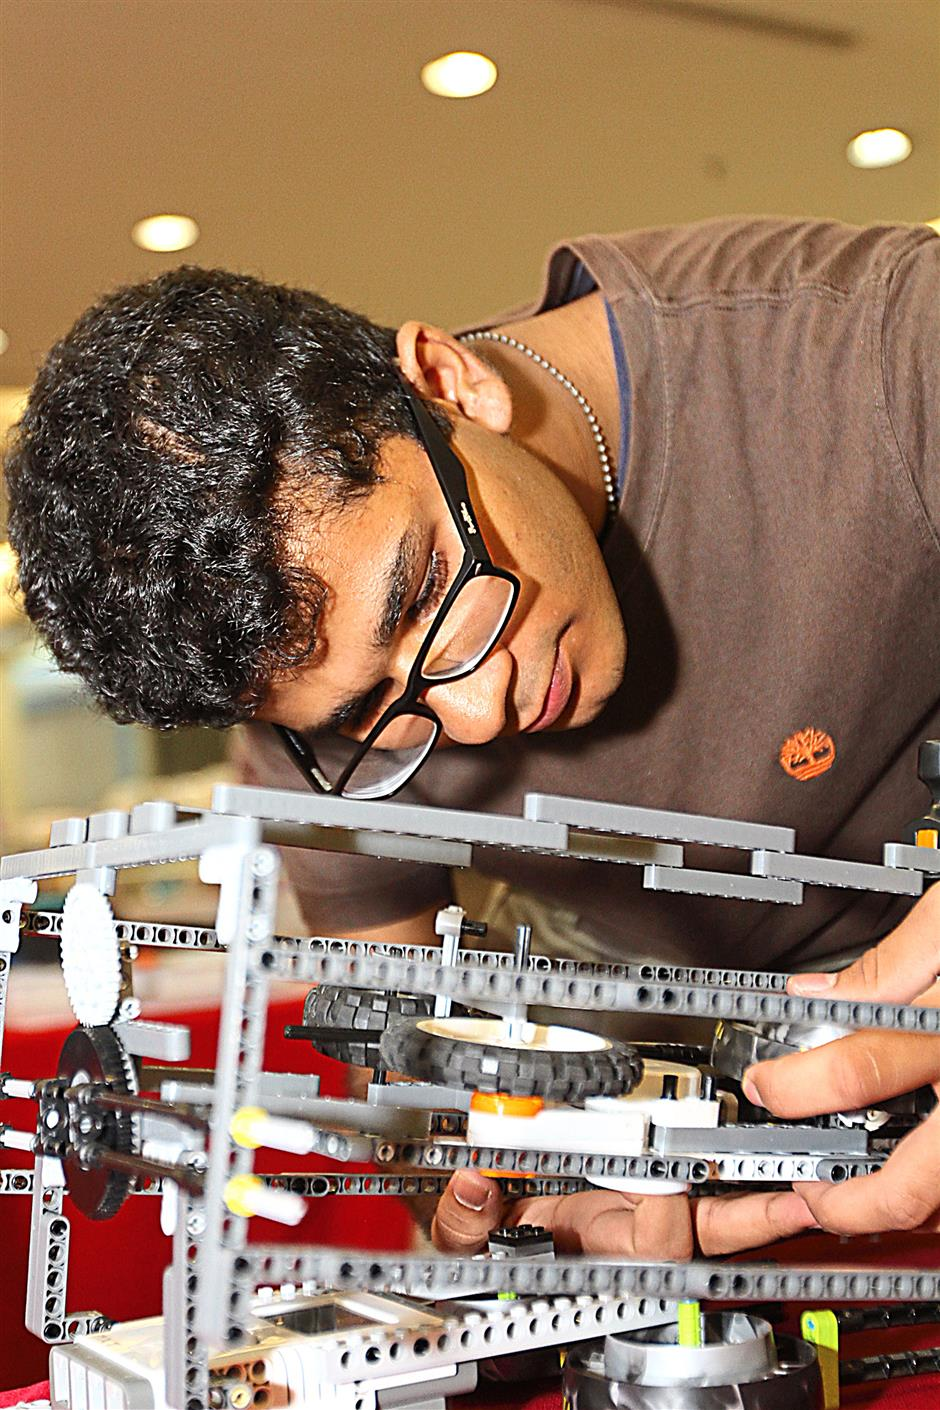 Dhruv Soni, 17, Subang Jaya with his Lego Mindstorm invention named